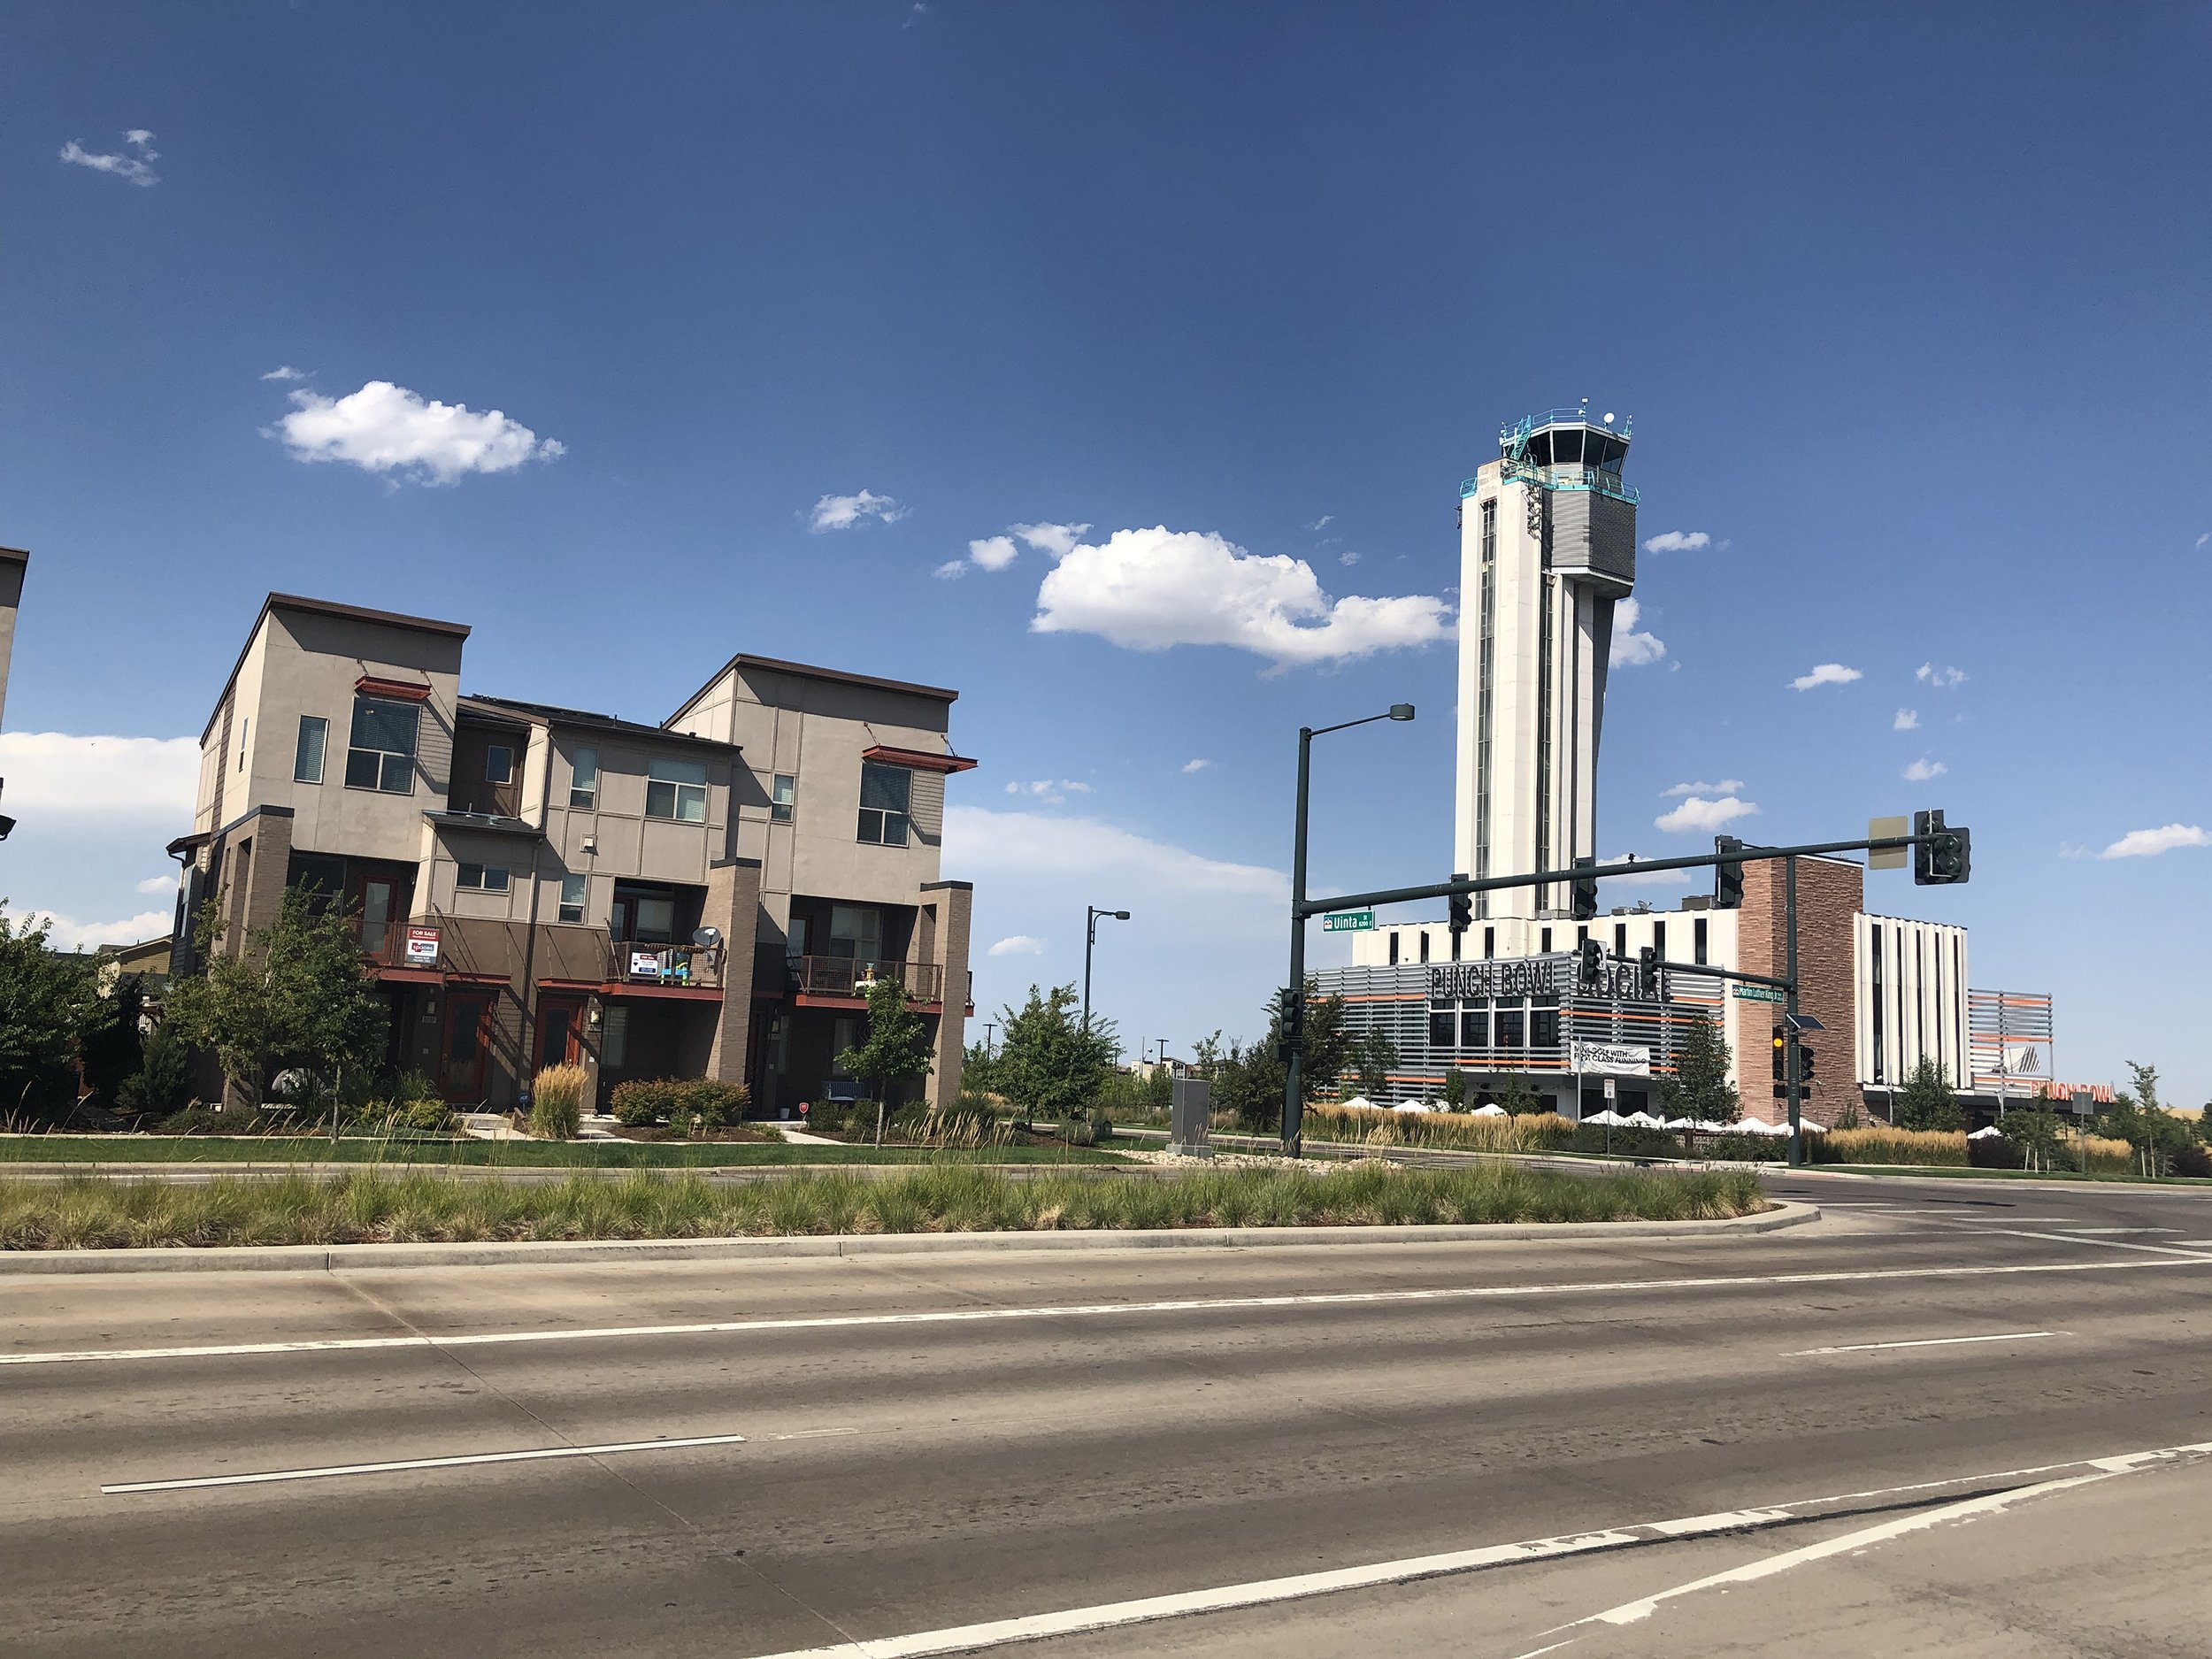 Property owners in Denver neighborhood vote to keep its controversial name